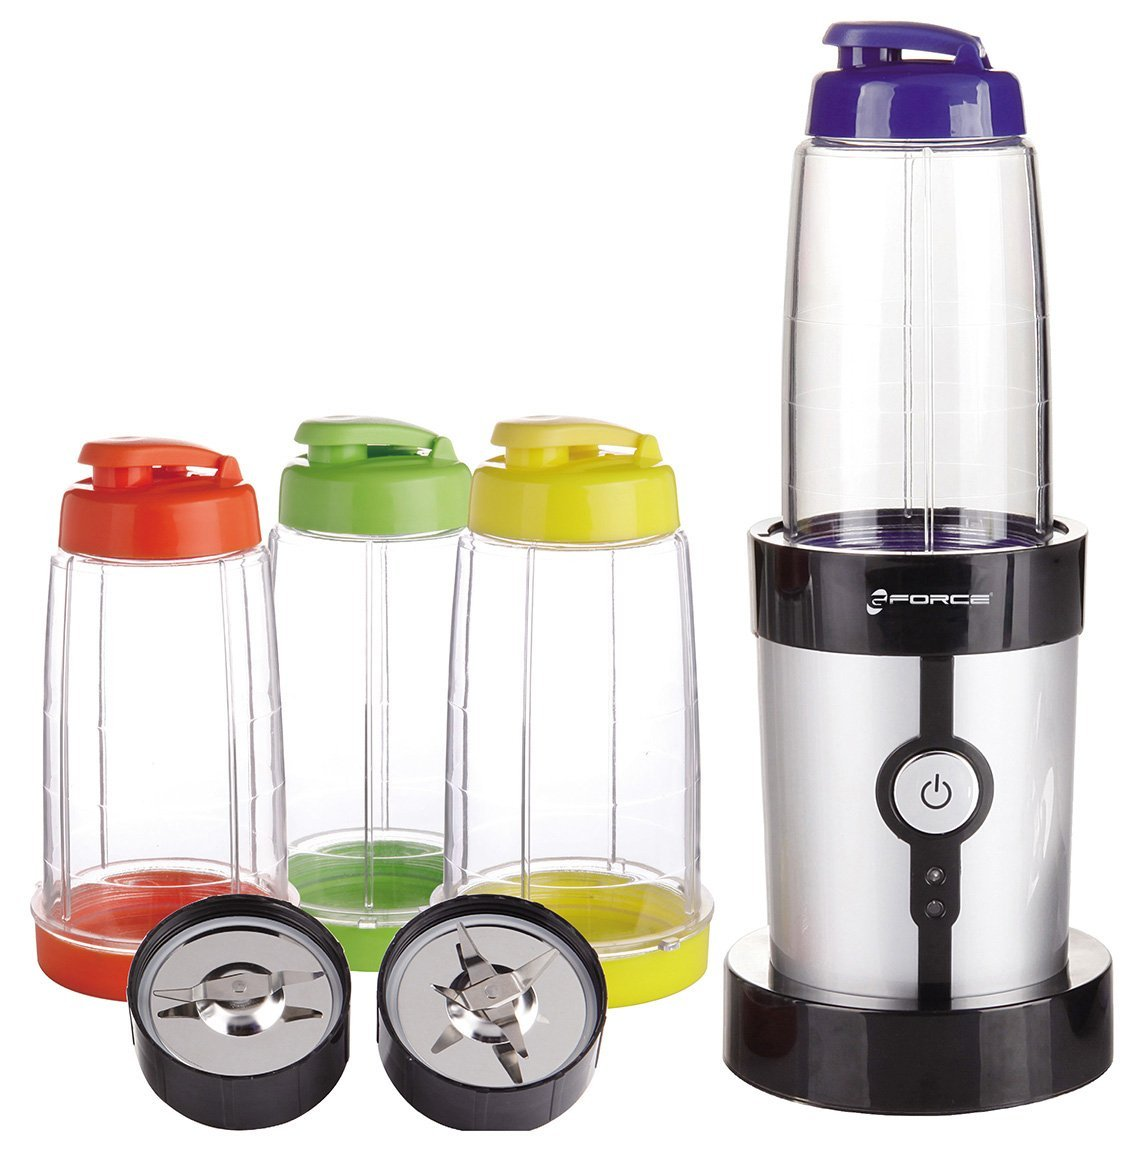 15 Piece Set Mini Blender with Travel Lids and Cups $33.99